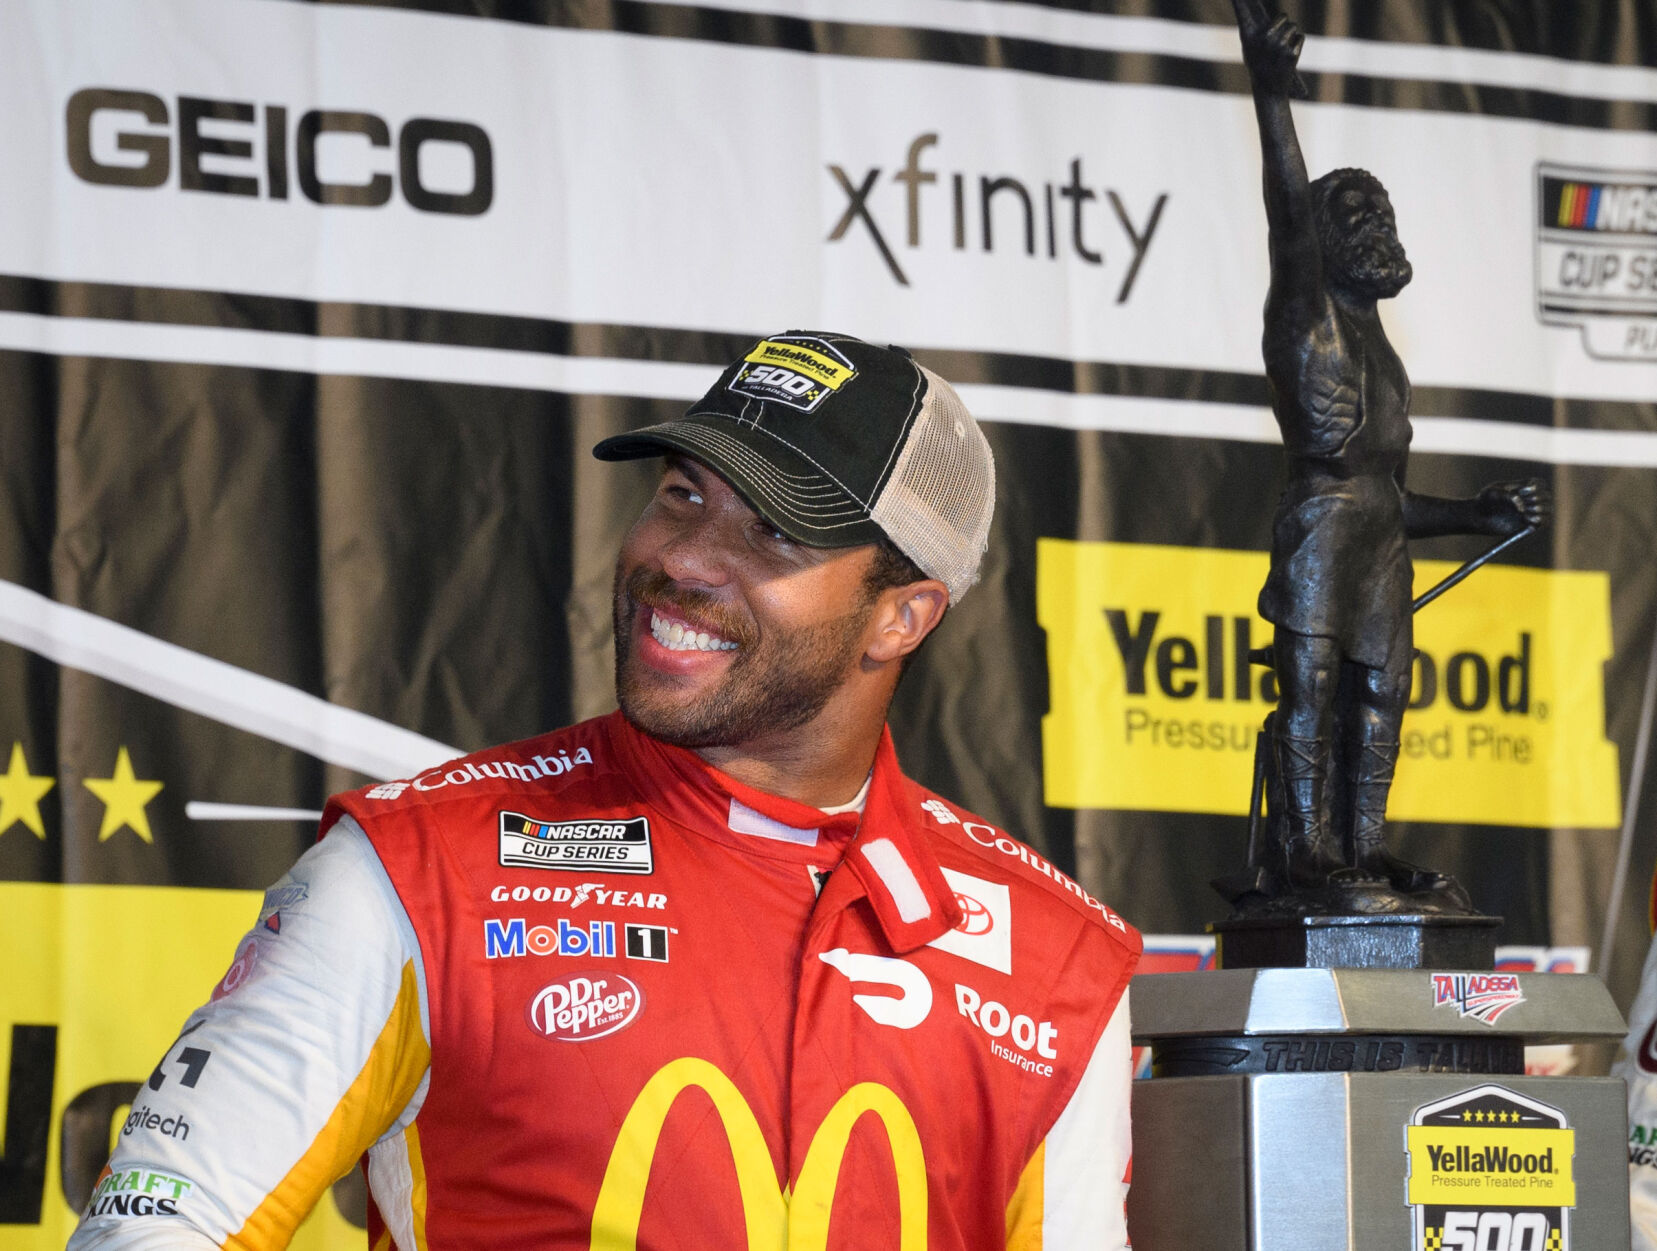 <p>Bubba Wallace celebrates next to the trophy after winning a NASCAR Cup series auto race Monday in Talladega, Ala. The race was stopped mid-race due to rain.</p>